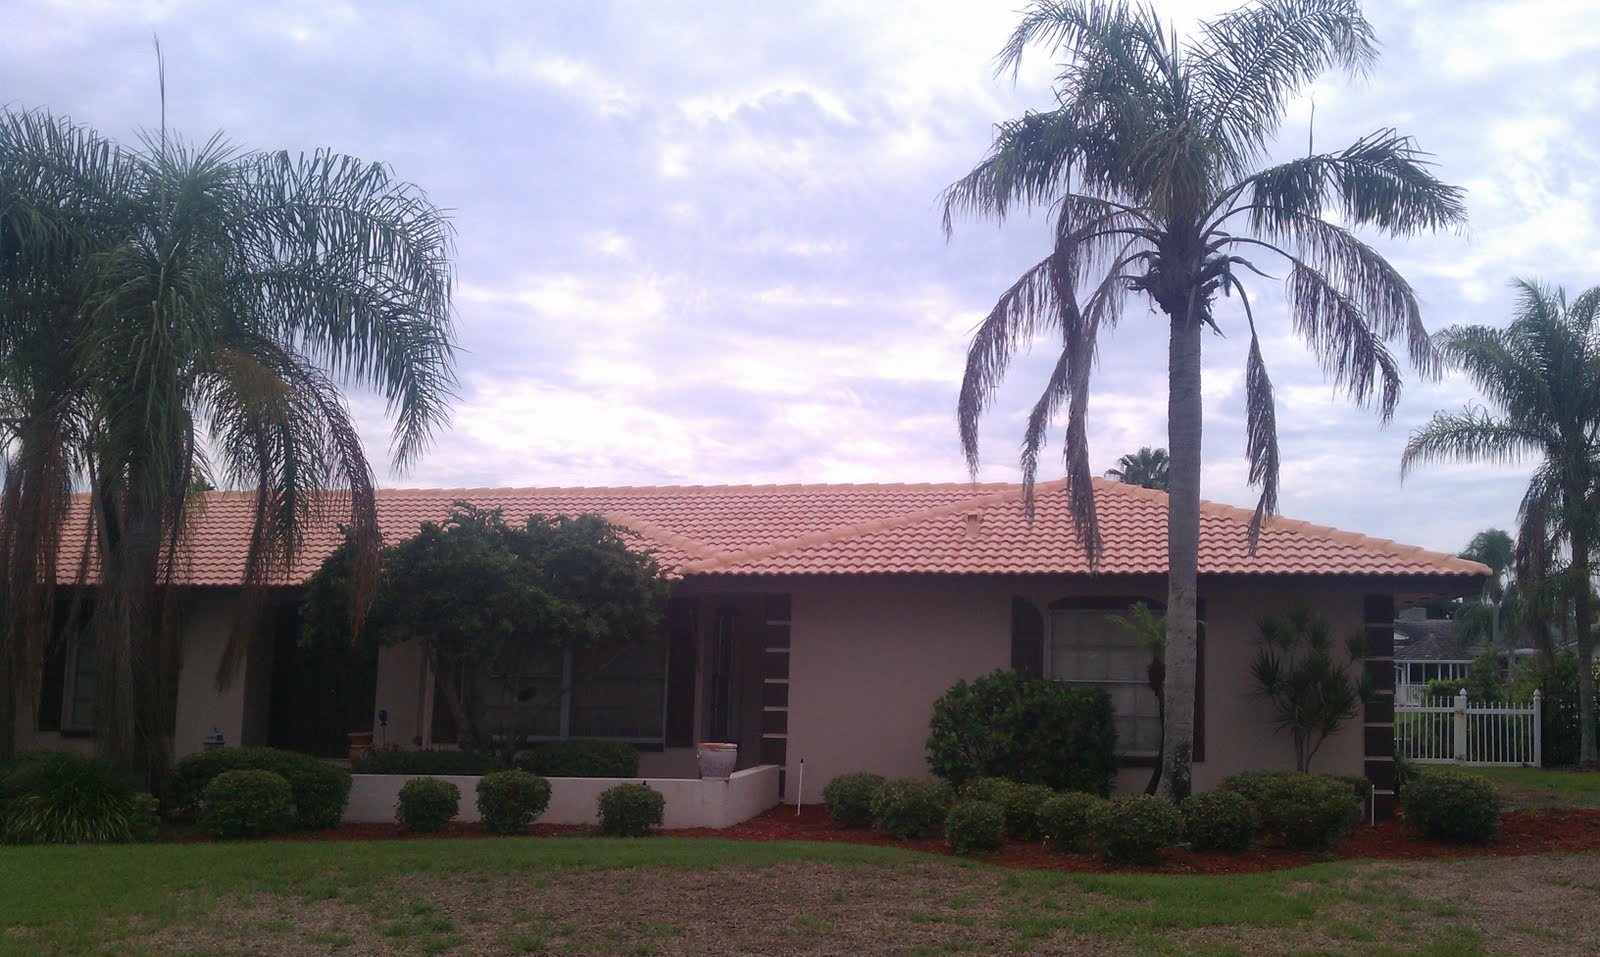 Beacon Roof Exterior Cleaning Melbourne Beach Florida